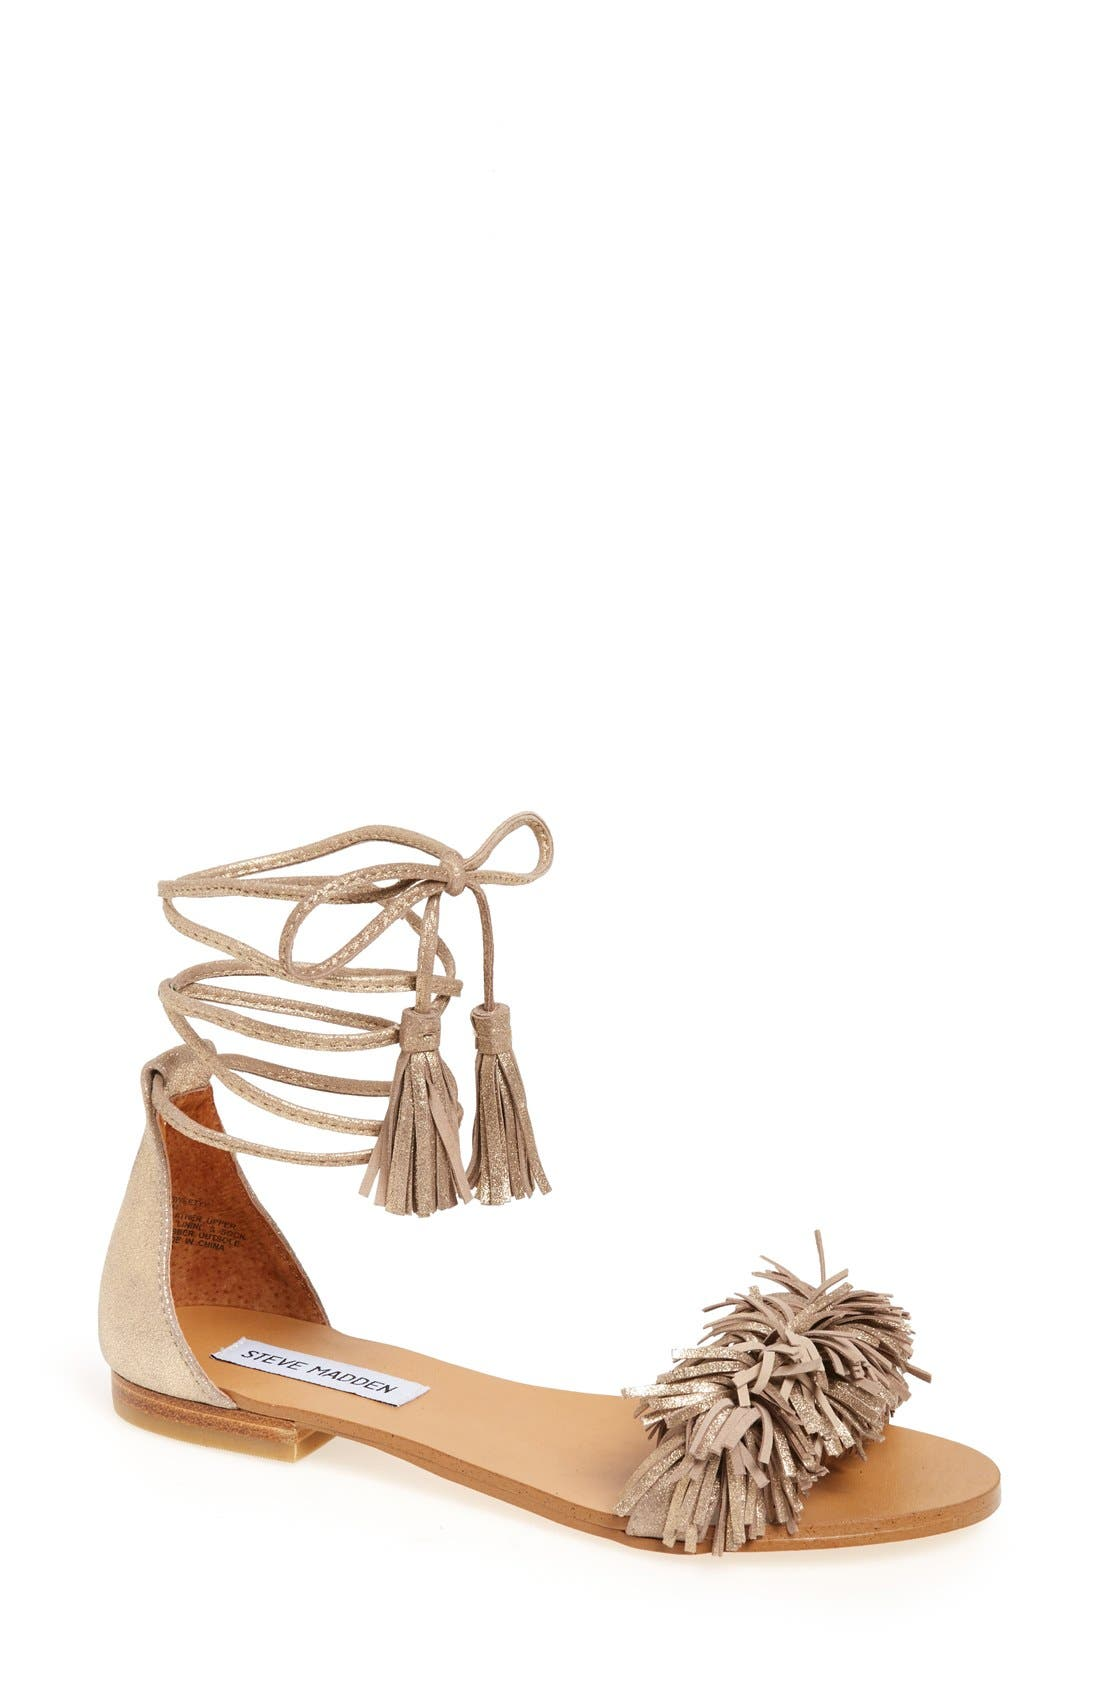 Main Image - Steve Madden 'Sweetyy' Lace-Up Sandal (Women)